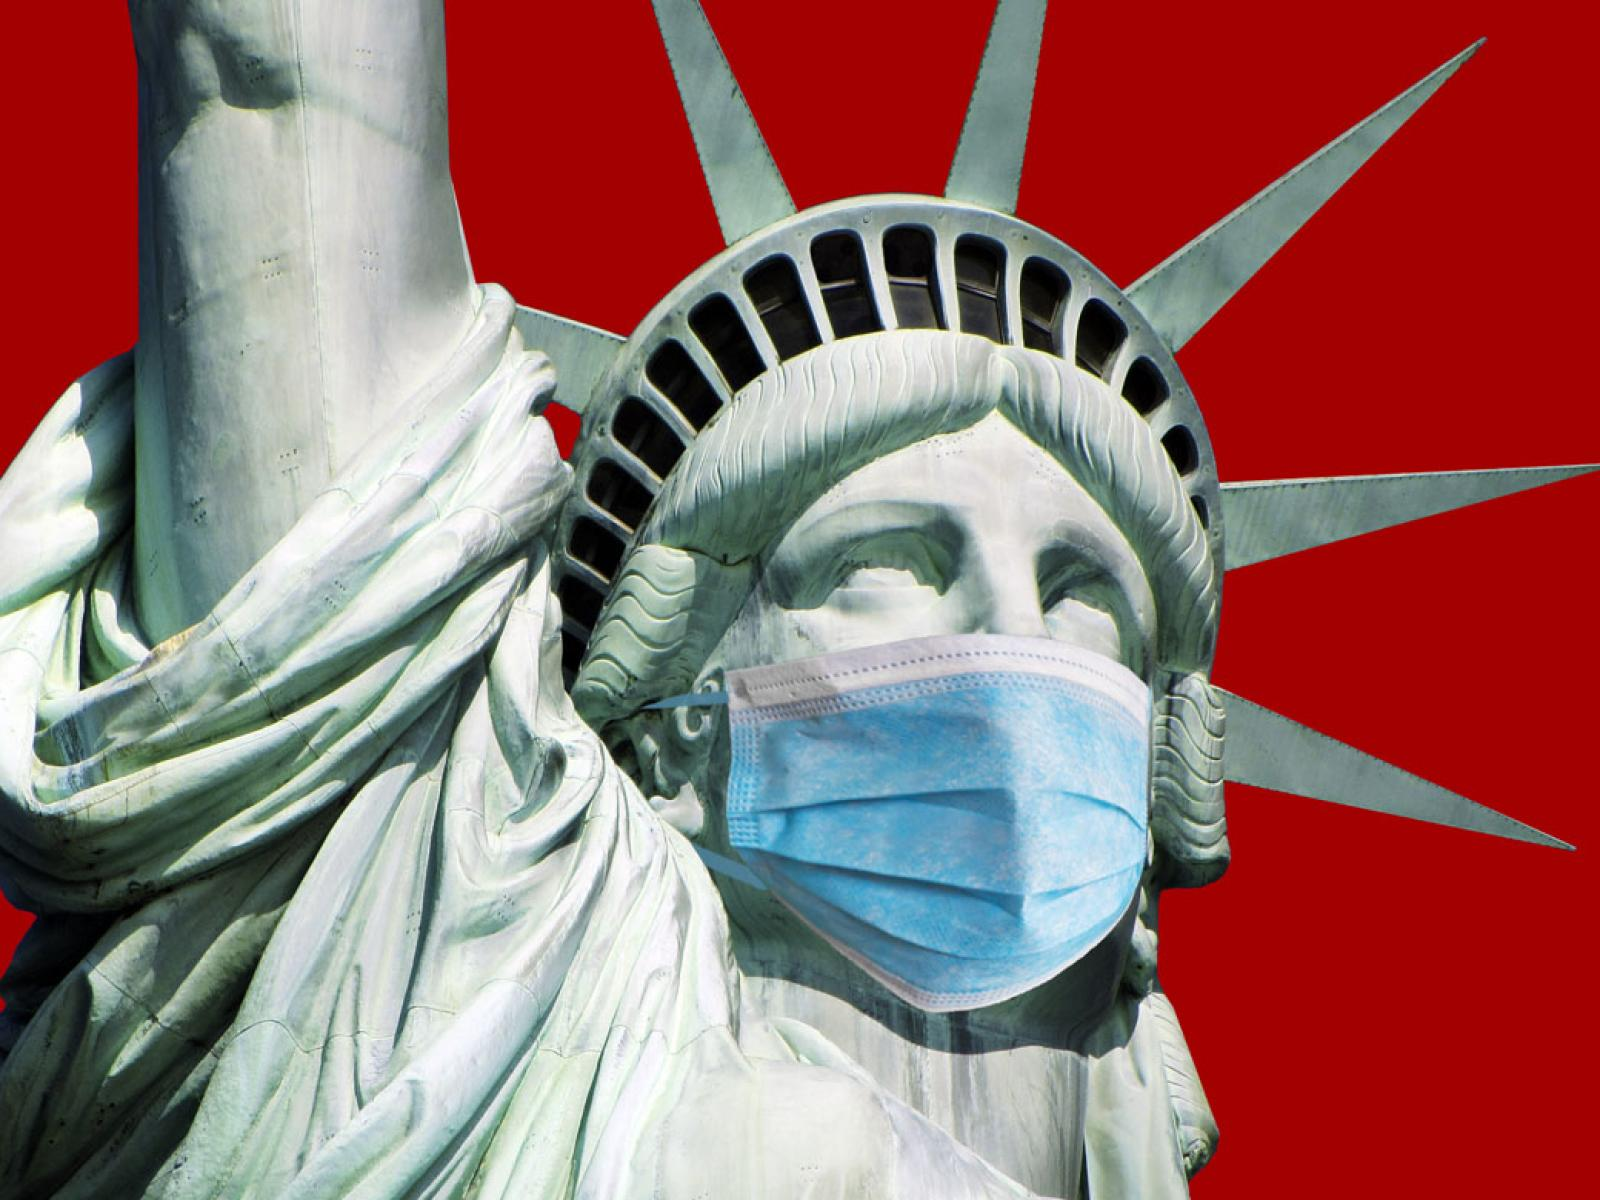 Statue of Liberty wearing a face mask